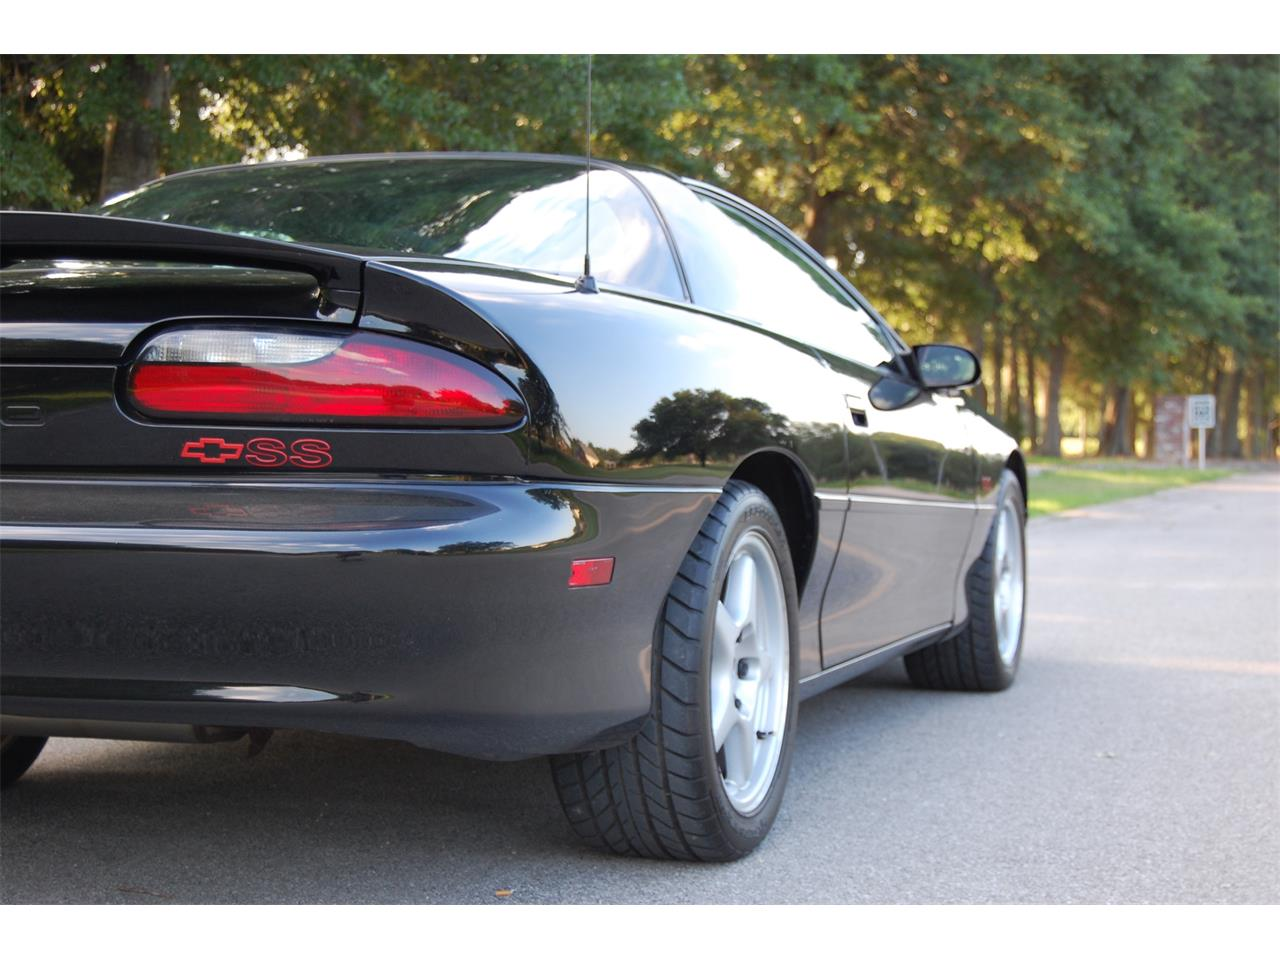 Large Picture of '96 Camaro SS located in Lafayette Louisiana - $20,000.00 Offered by a Private Seller - O8FP